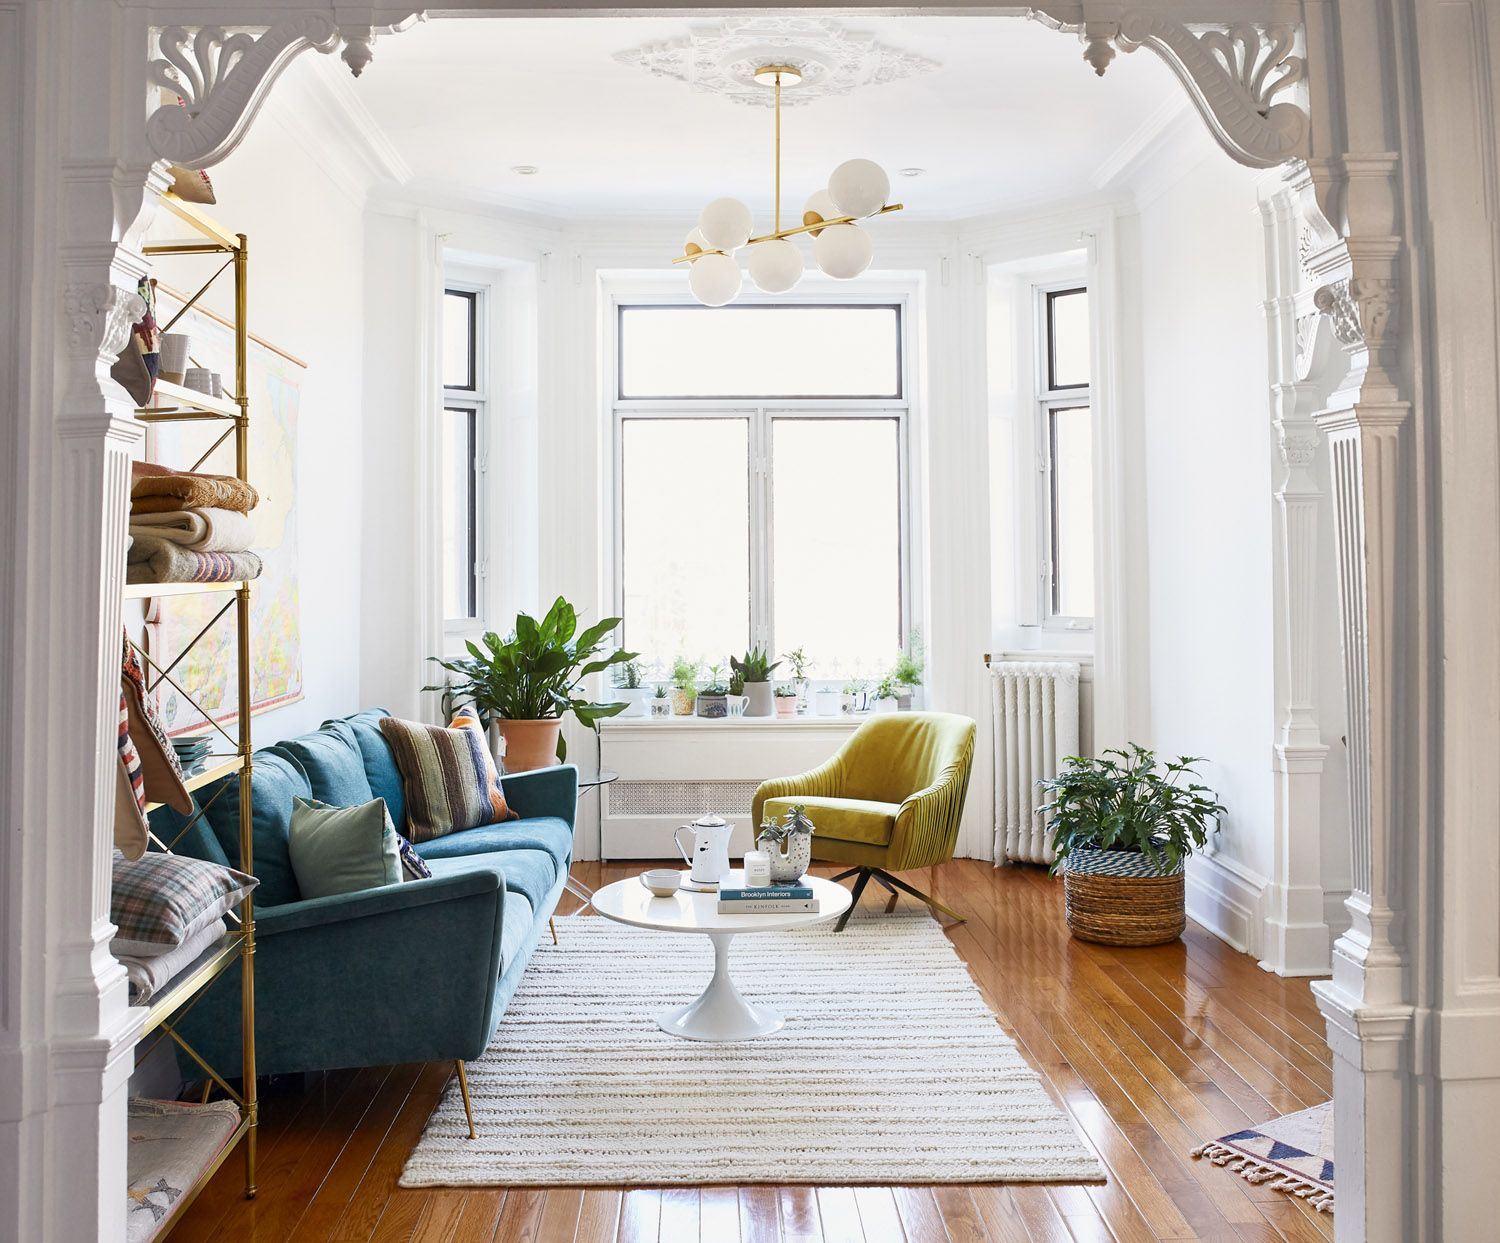 west elm - Eclectic and Colorful Mid-Century Modern ...